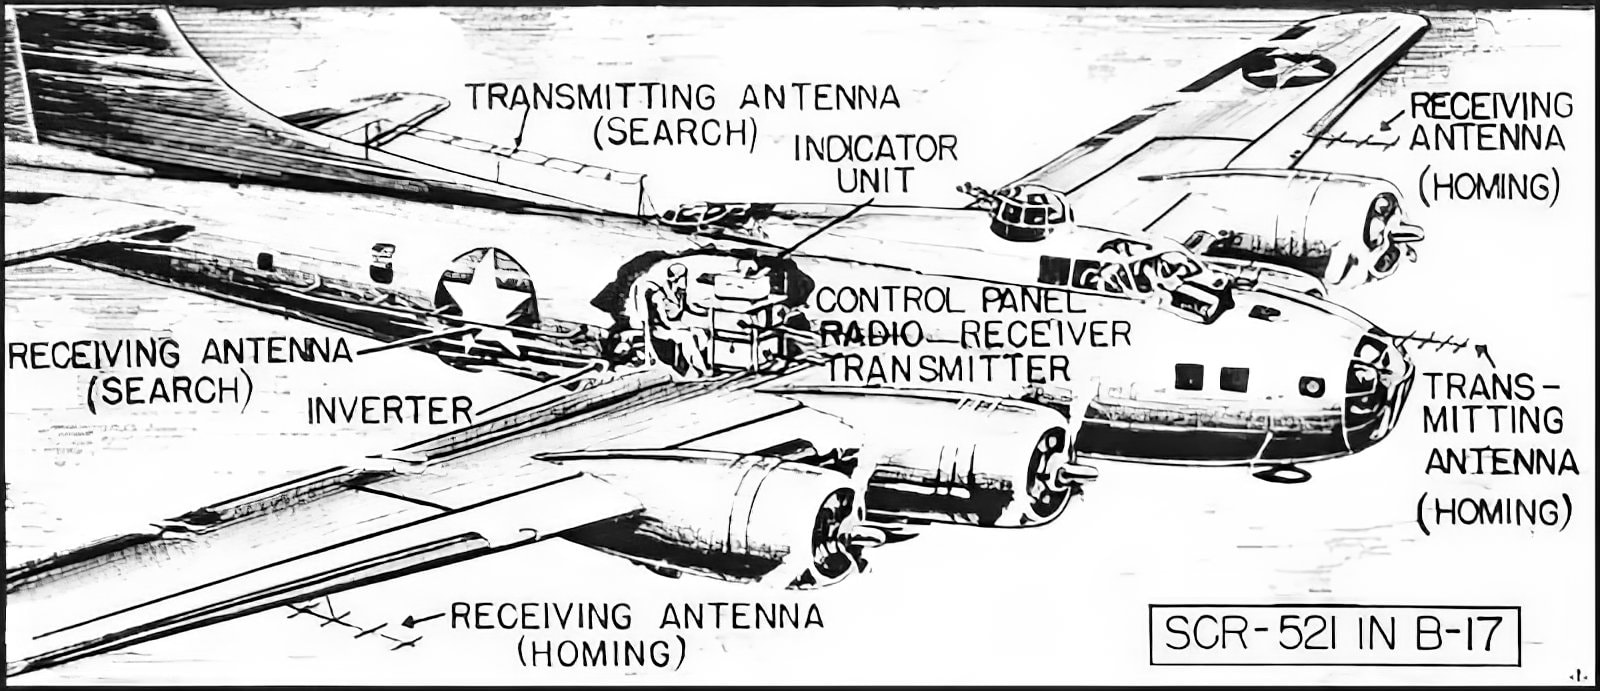 The history of the Boeing B-17 Flying Fortress planes from